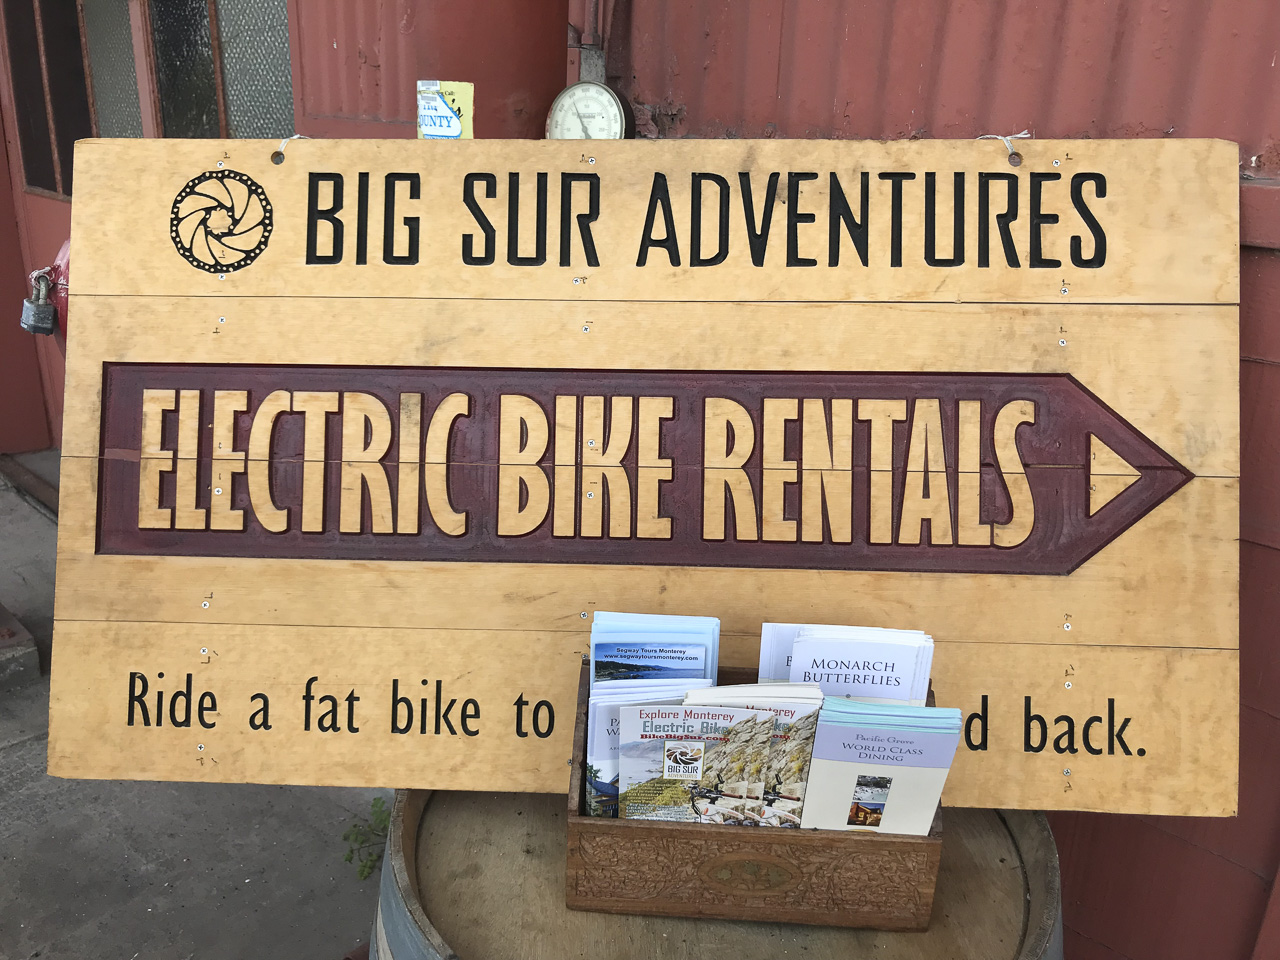 Big Sur Adventures ebikes